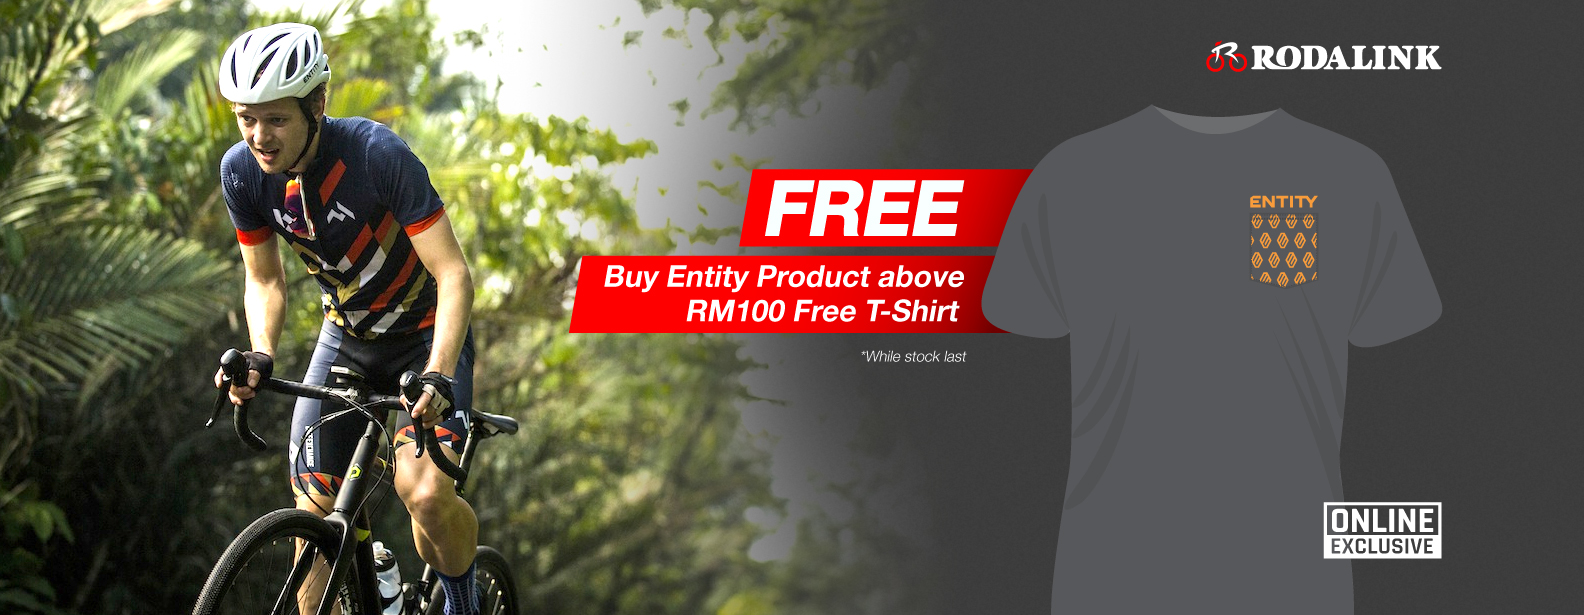 Rodalink Malaysia Bicycle Online Shop In Sepeda Balap Polygon Helios A60 700c Entity Product